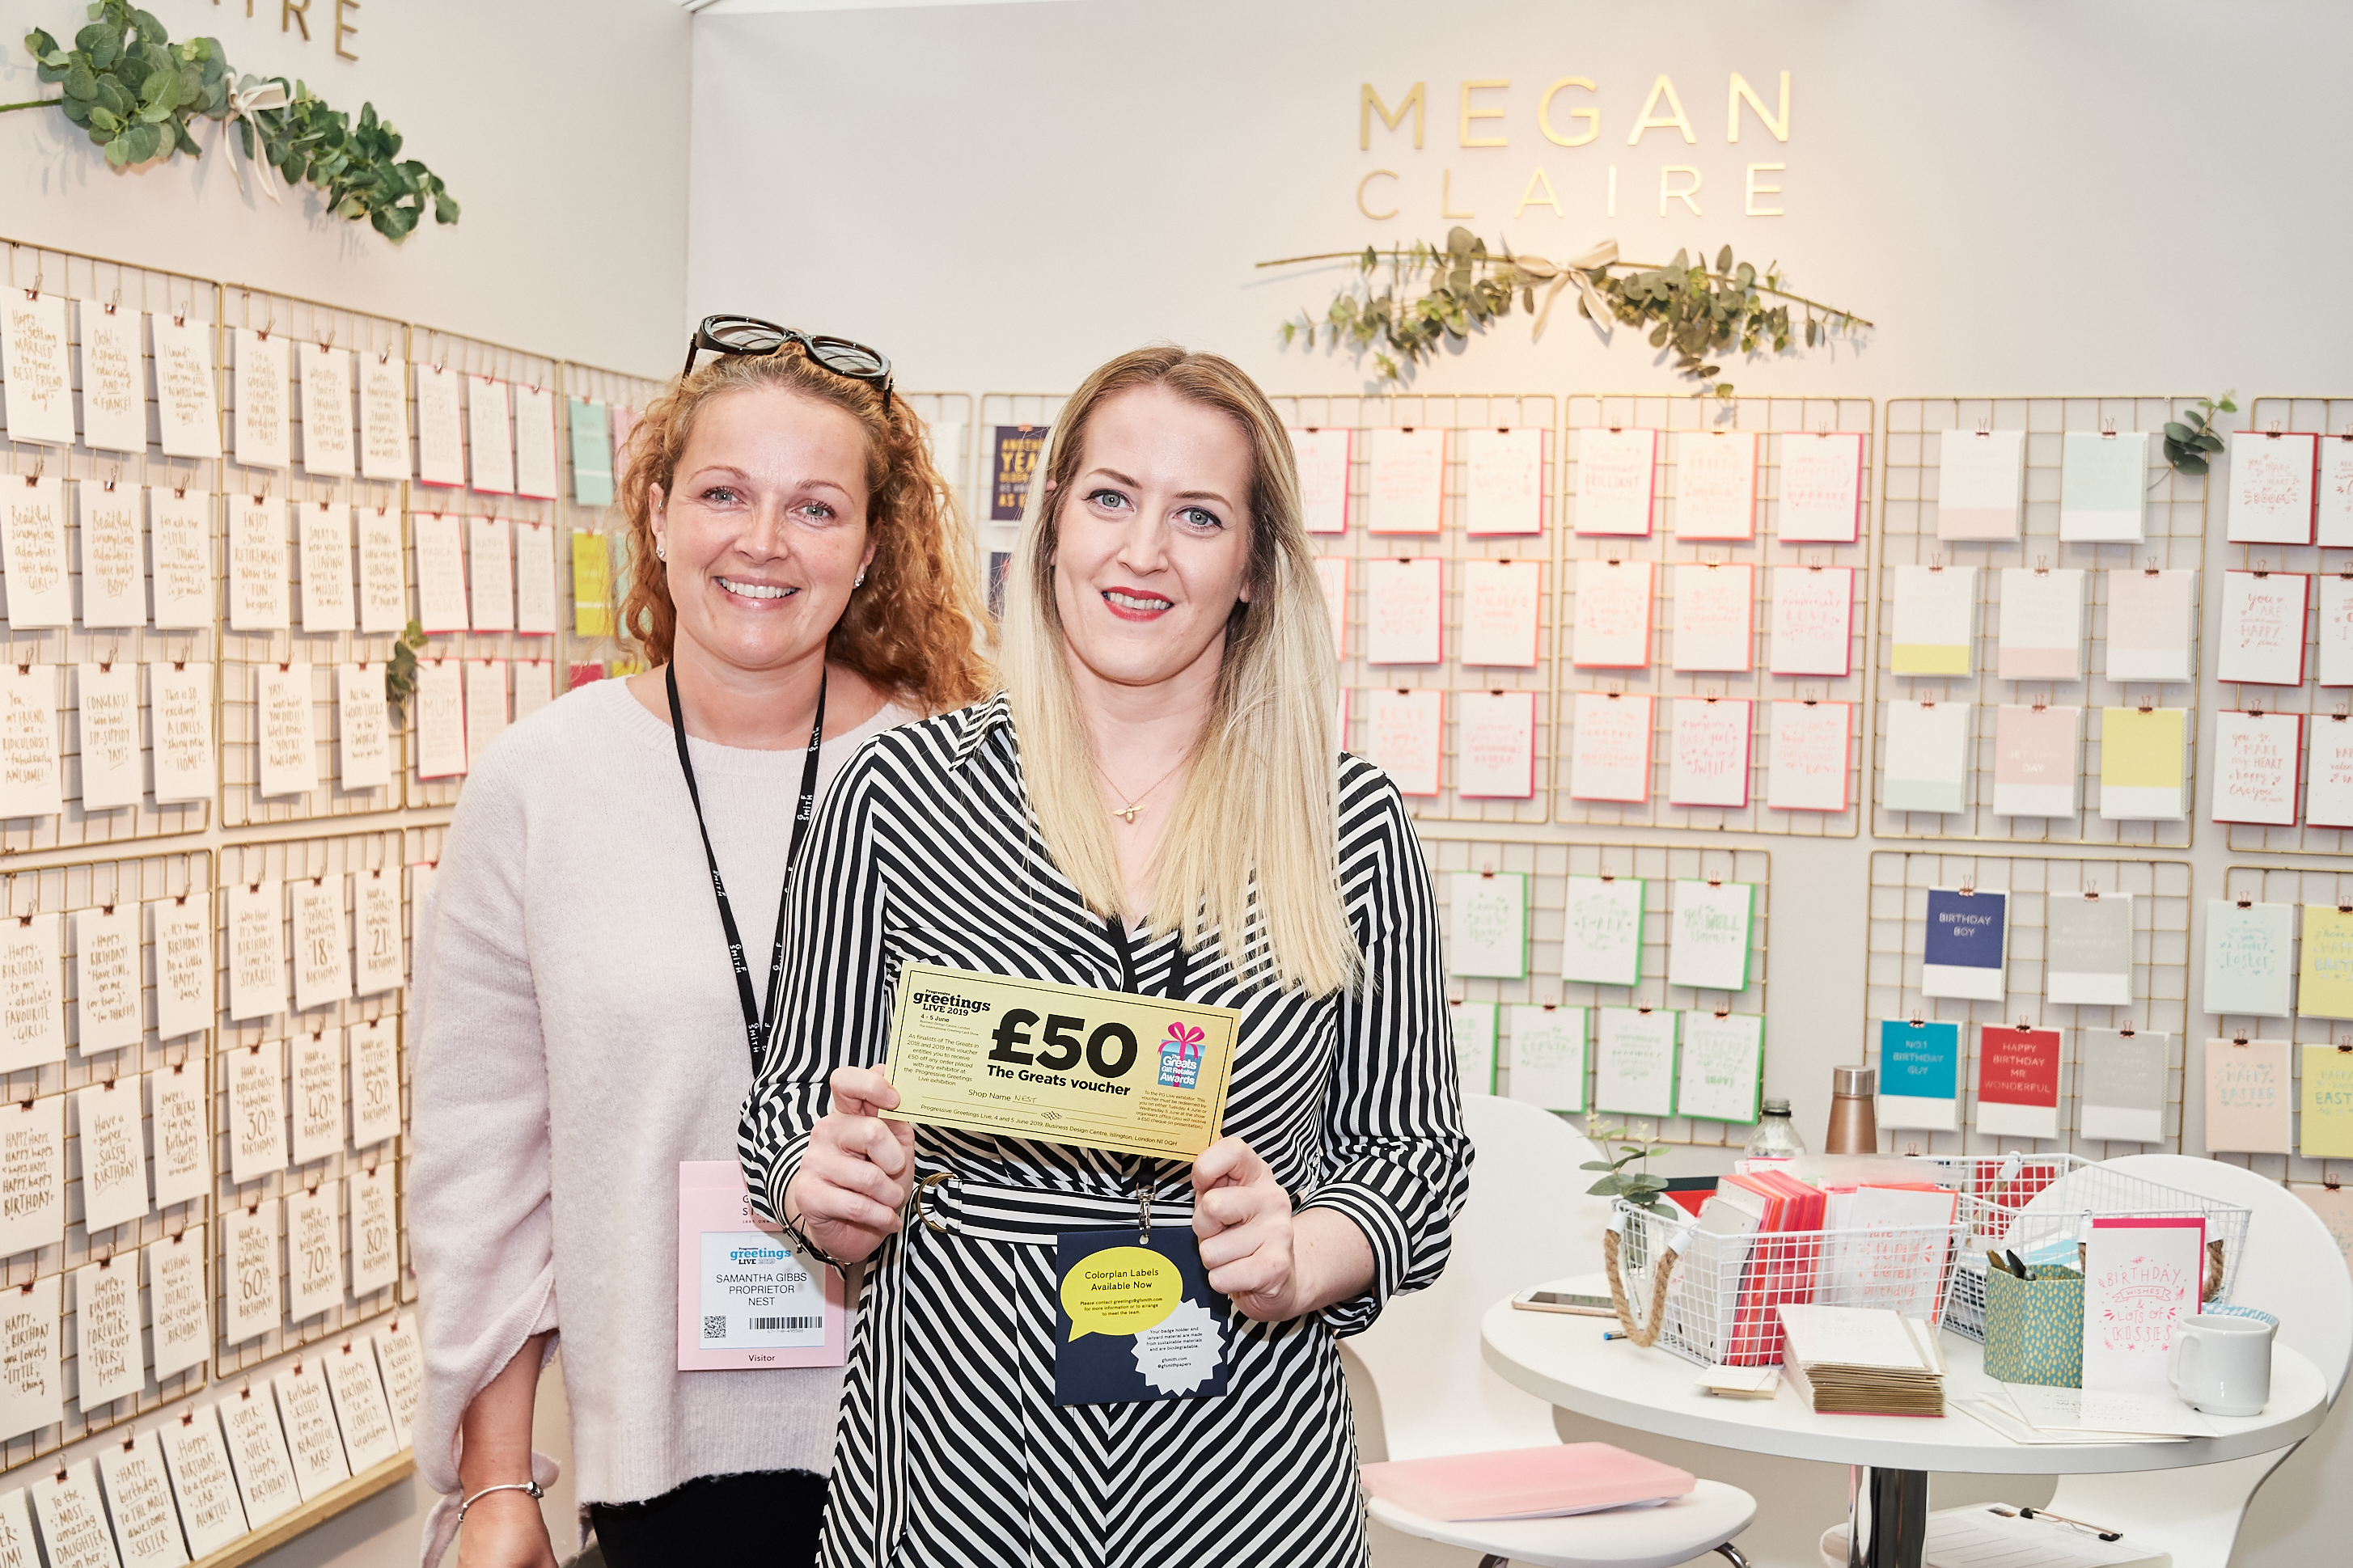 Above: Nest's Samantha Gibbs (left) with Megan Purdie, founder of Megan Claire at last year's PG Live show.